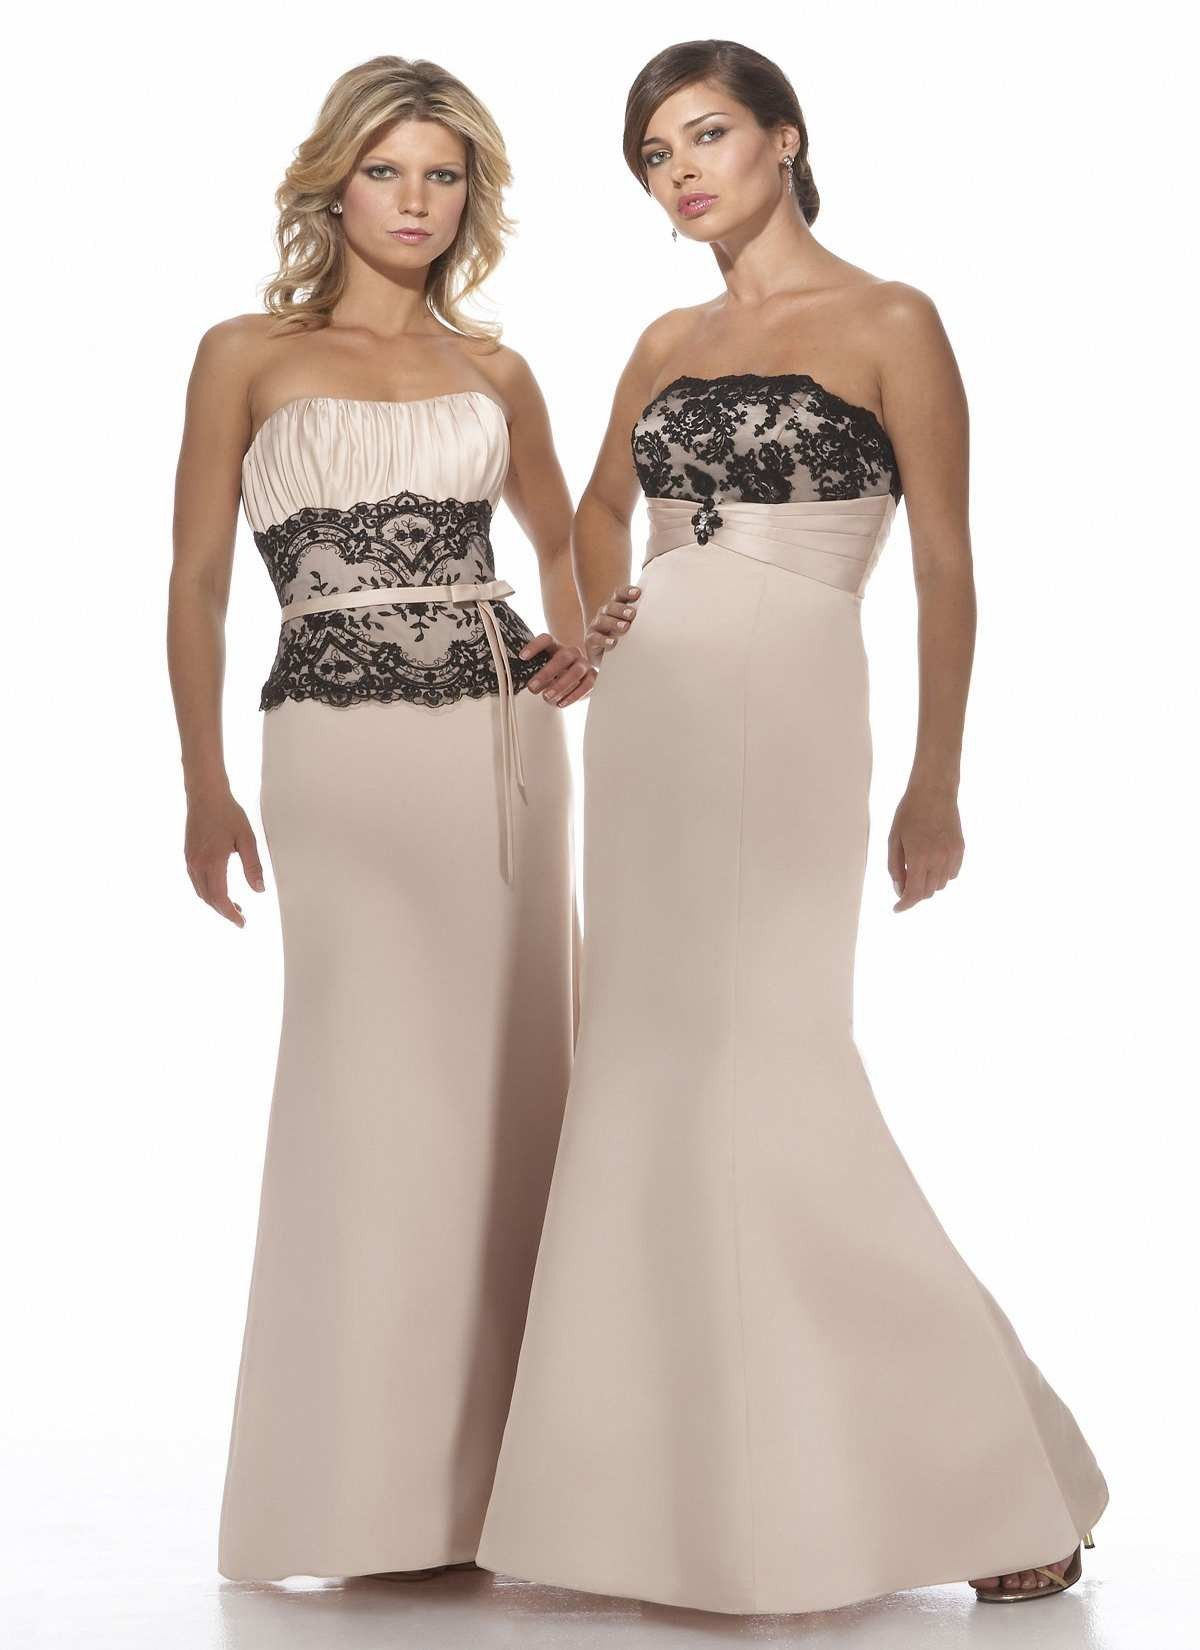 Bridesmaid lace dresses above black and champagne lace bridesmaid lace dresses above black and champagne lace bridesmaid dresses the property ombrellifo Image collections